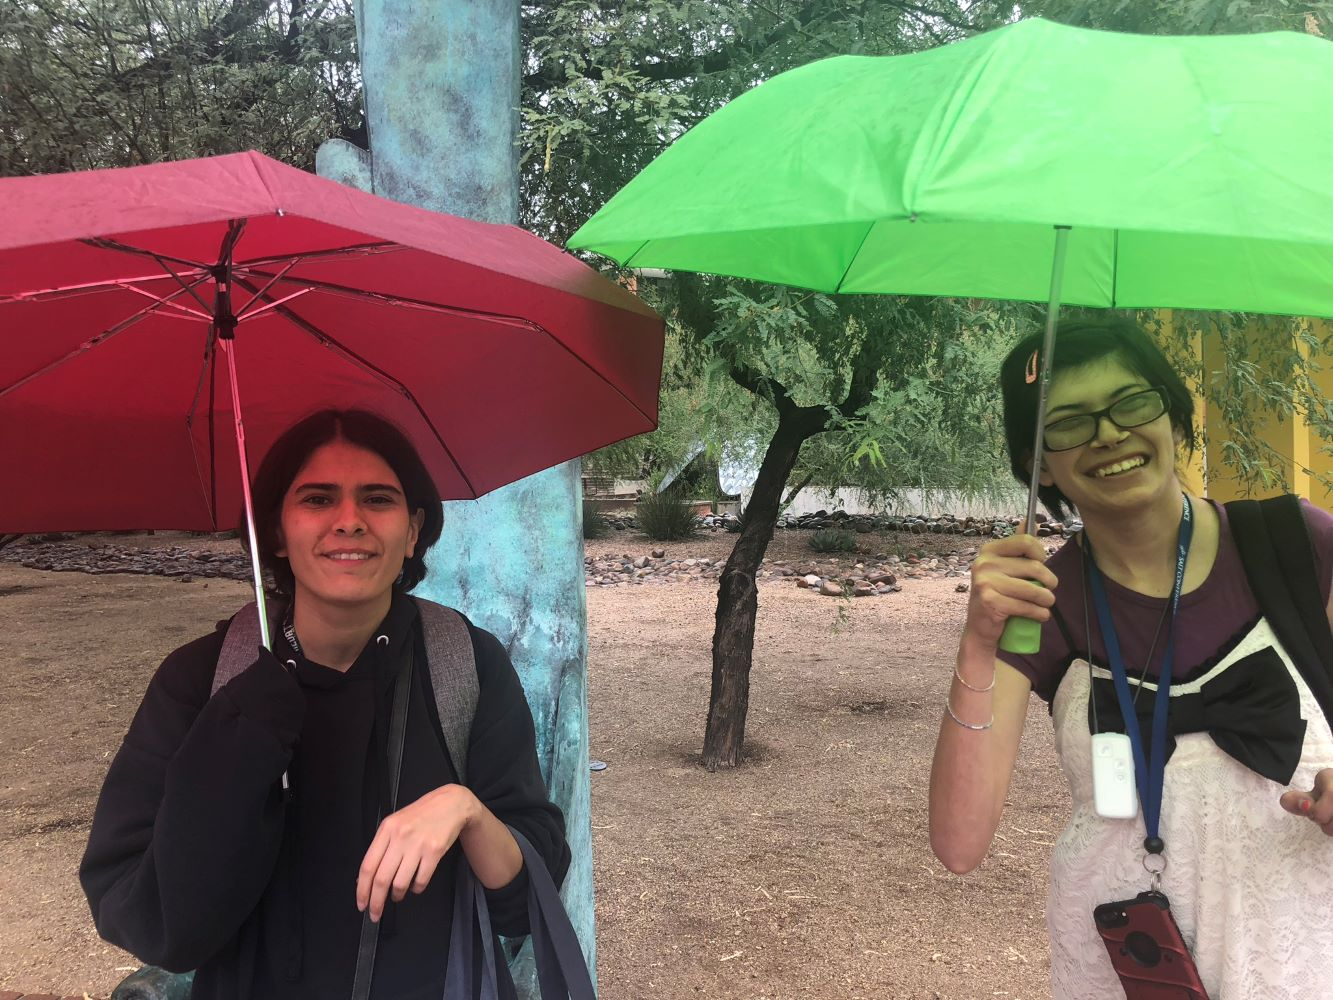 two students smiling outside holding open umbrellas